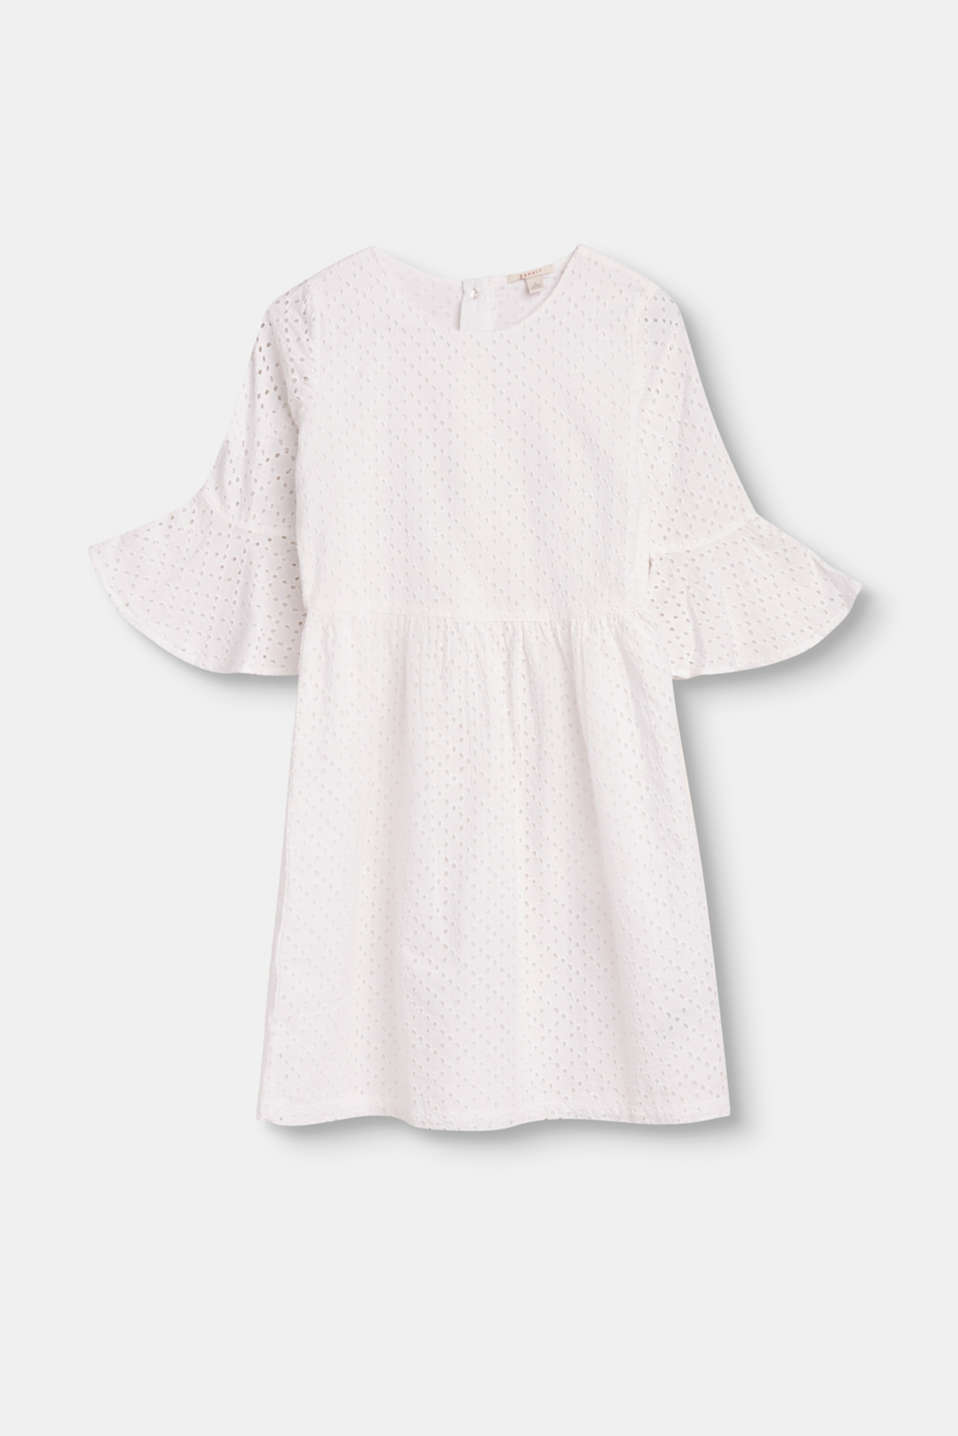 Esprit - Hippie dress with broderie anglaise, 100% cotton